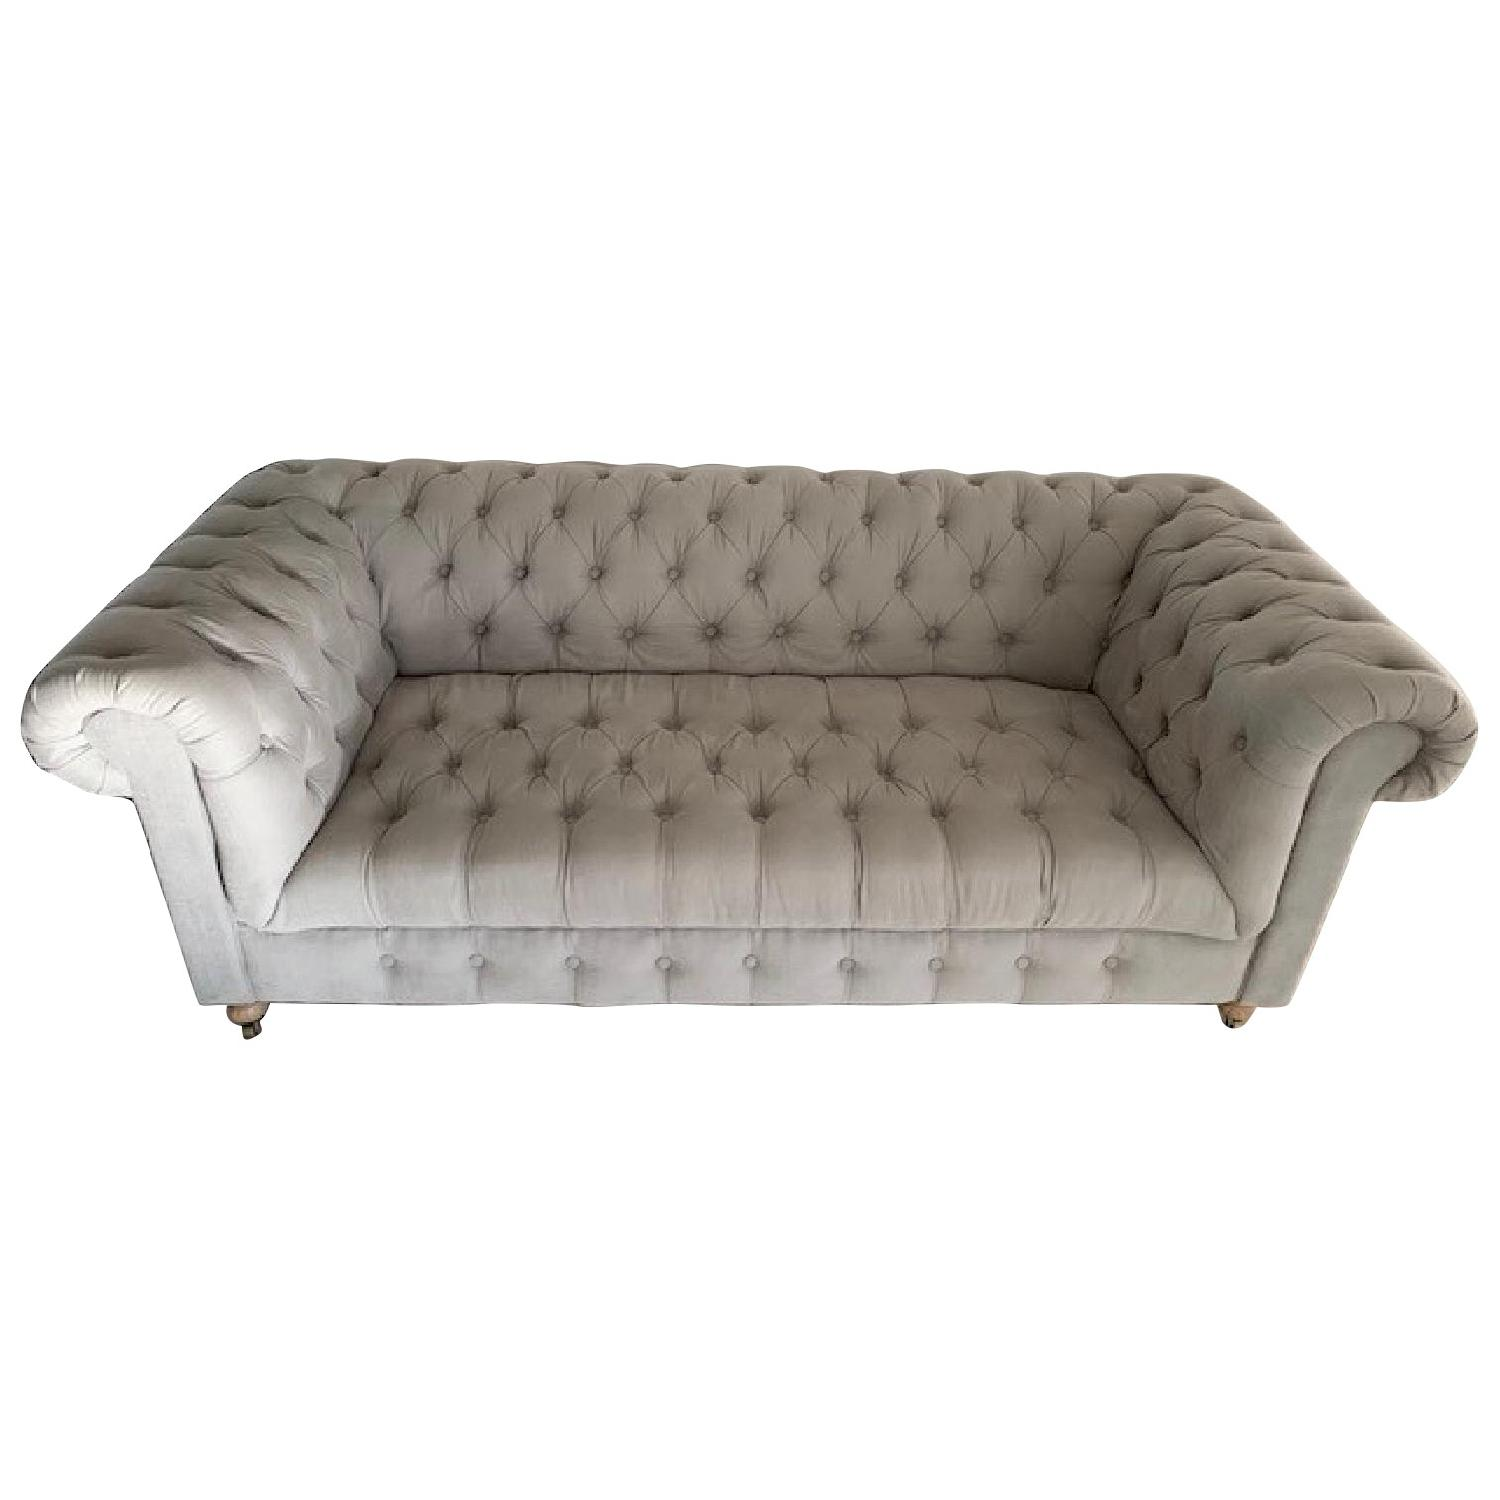 Restoration Hardware Cambridge Belgian Linen Fog Sofa